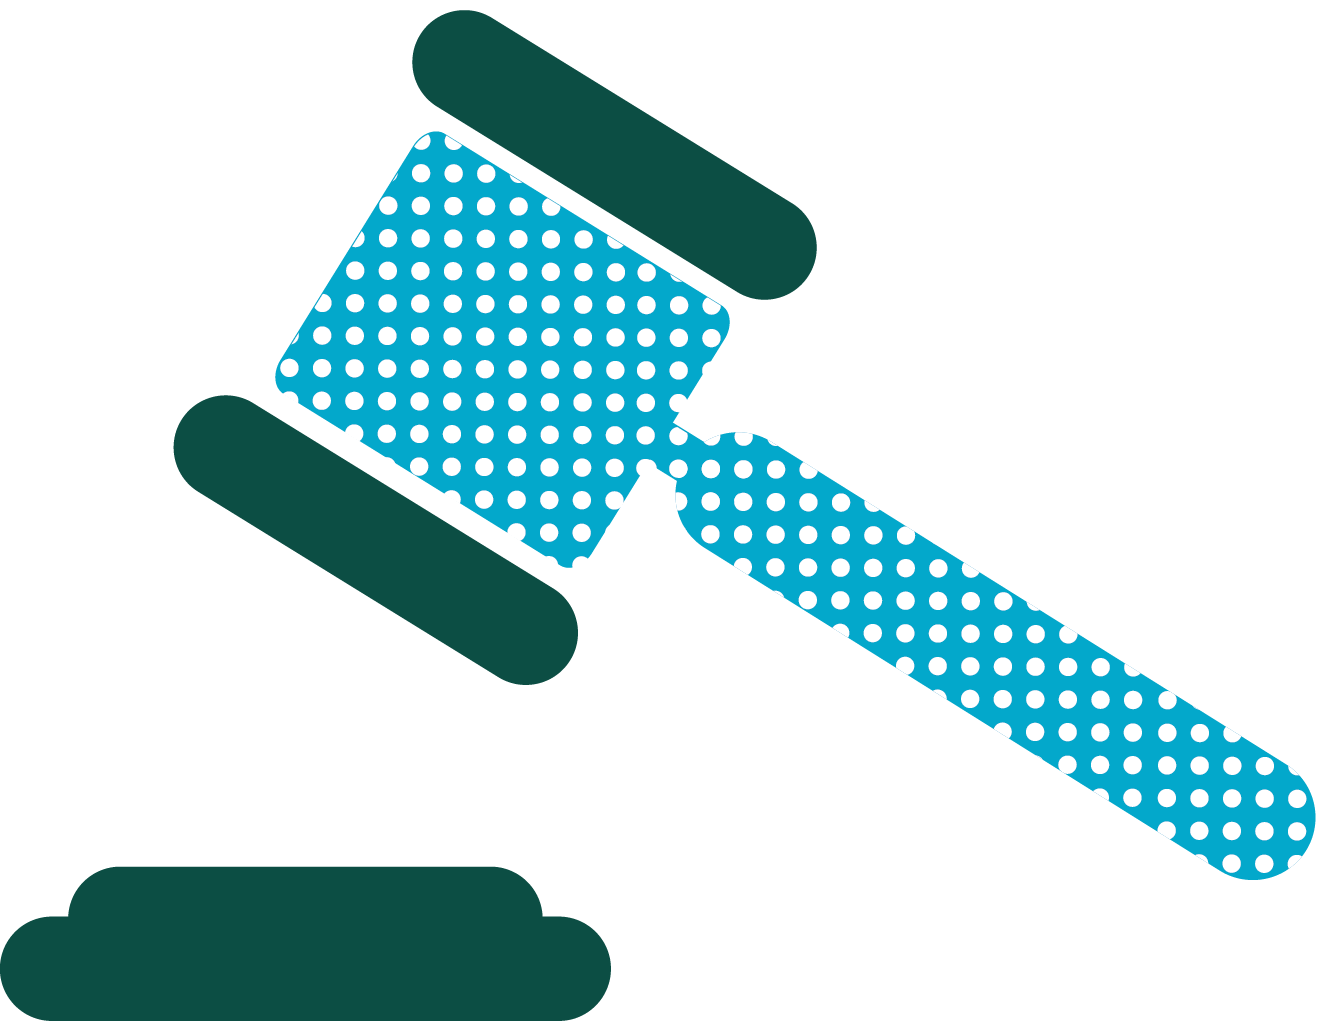 Gavel clipart common law. Legal sector and other